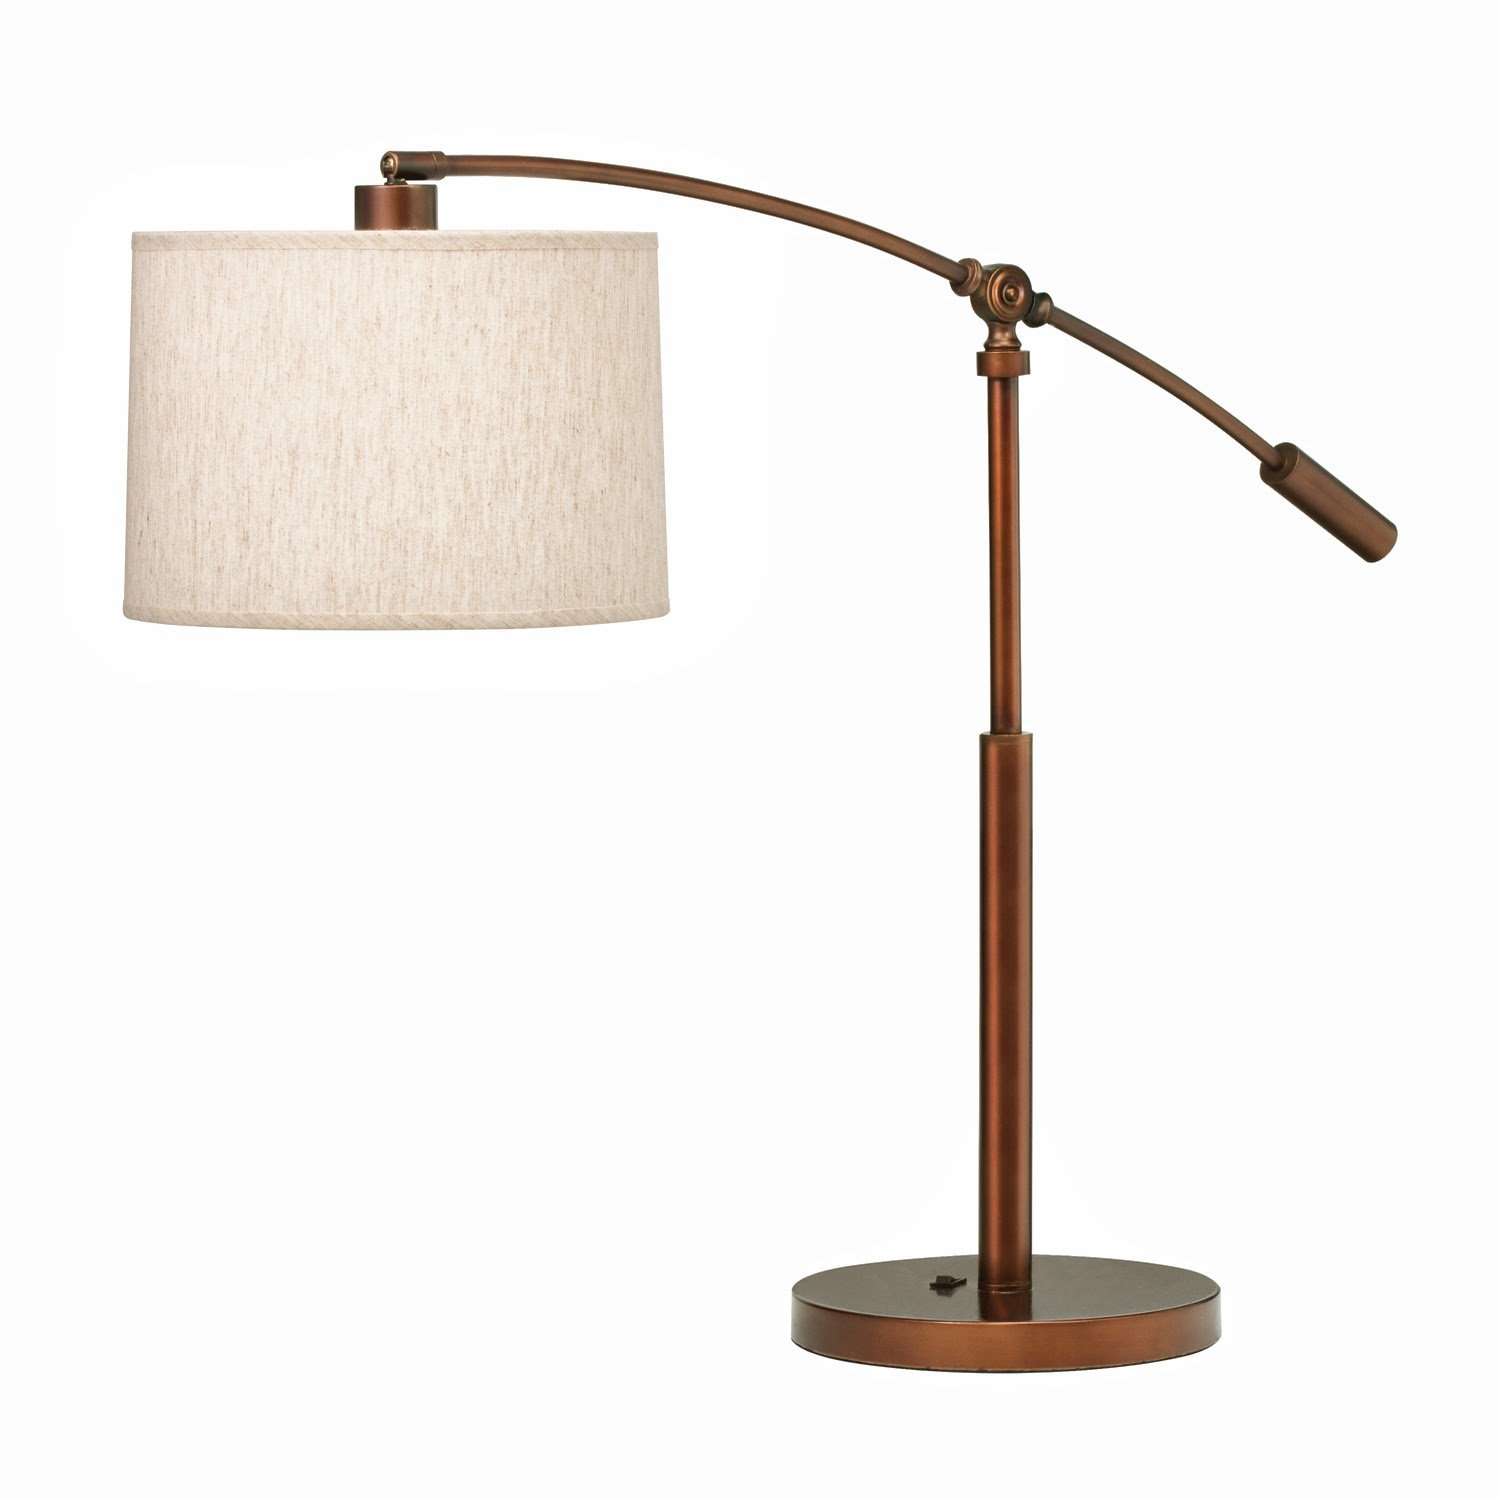 Best bedside reading lamp - Lighting For Students | Warisan Lighting